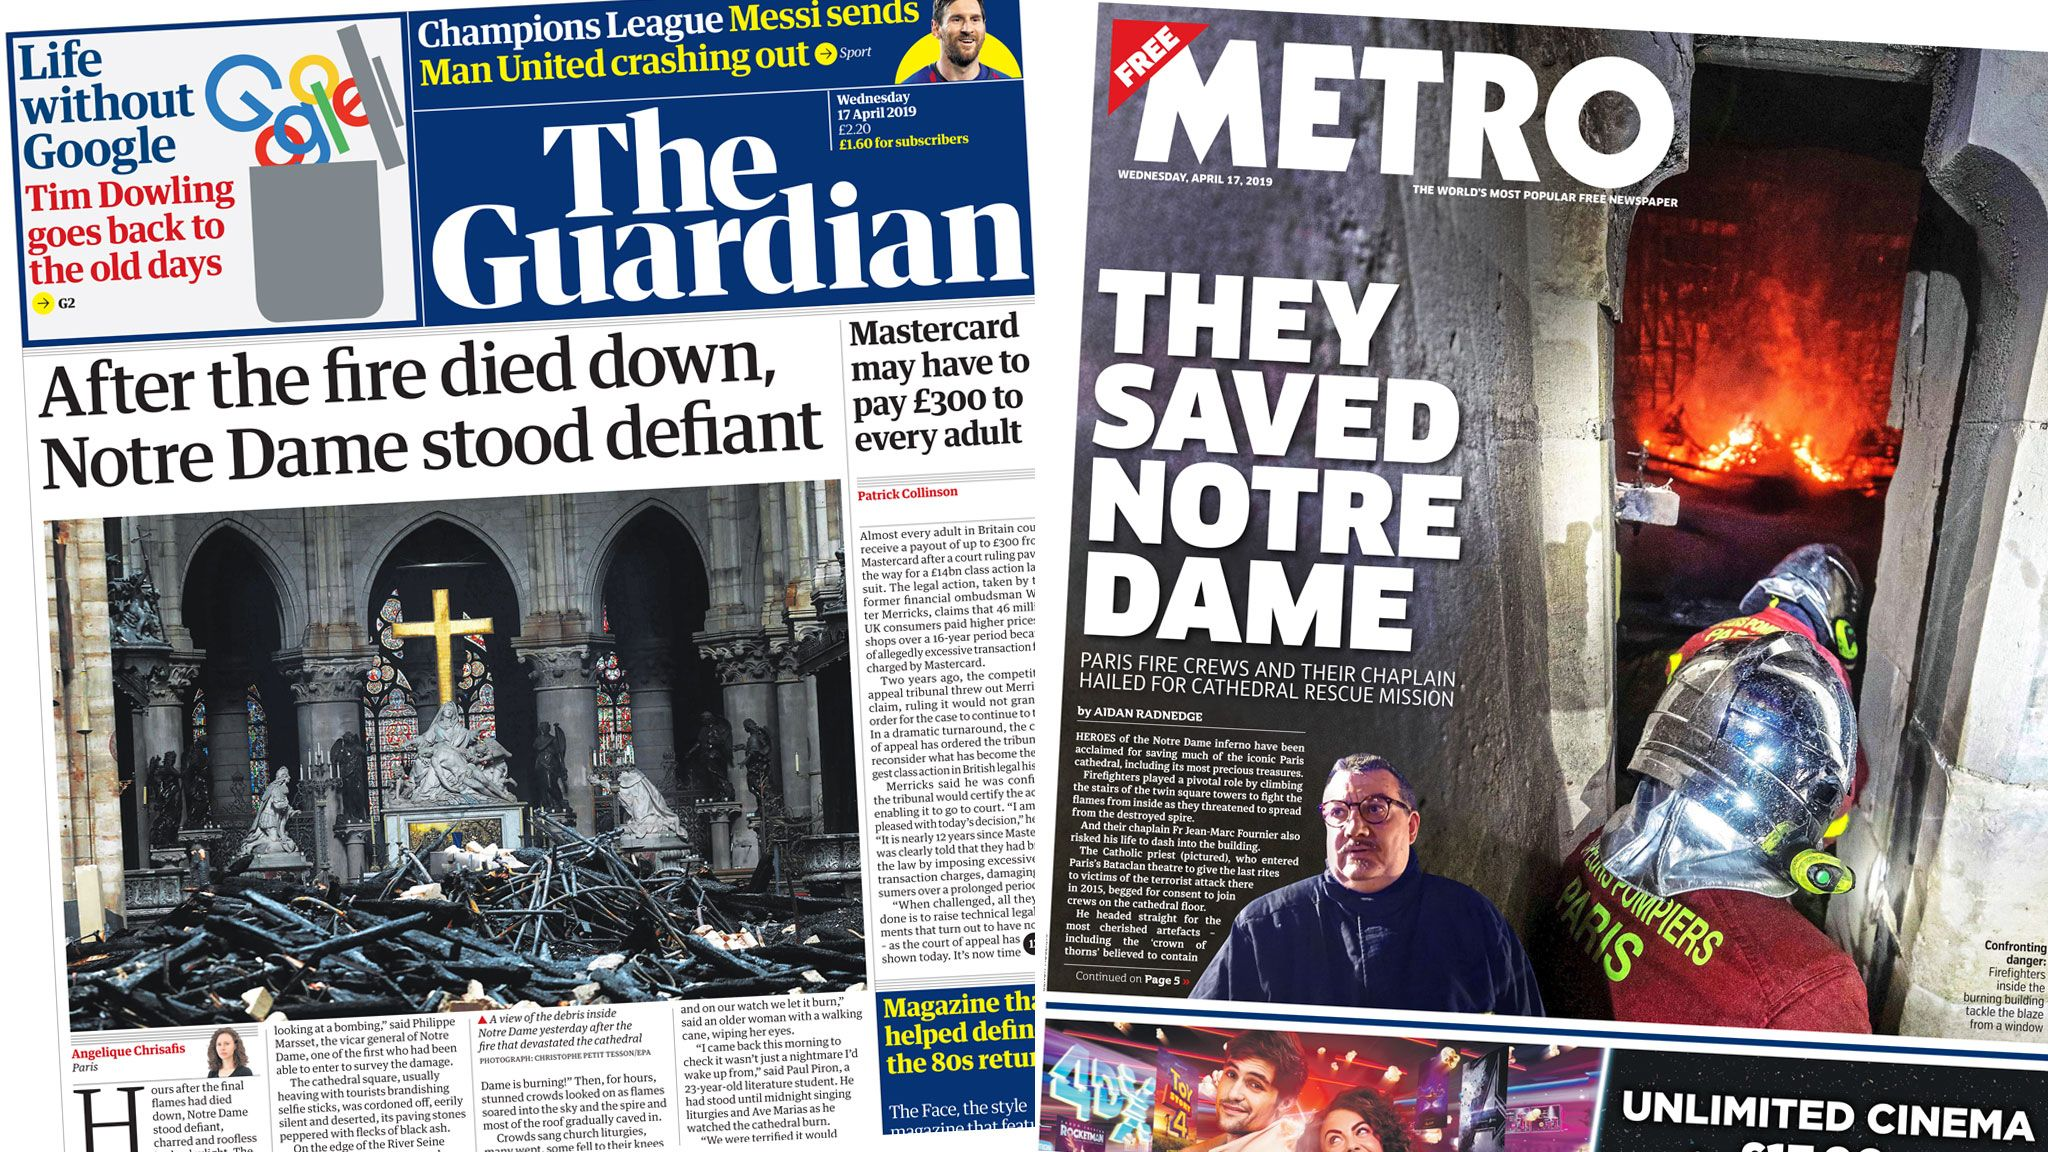 The Guardian and Metro front pages on 17 April 2019